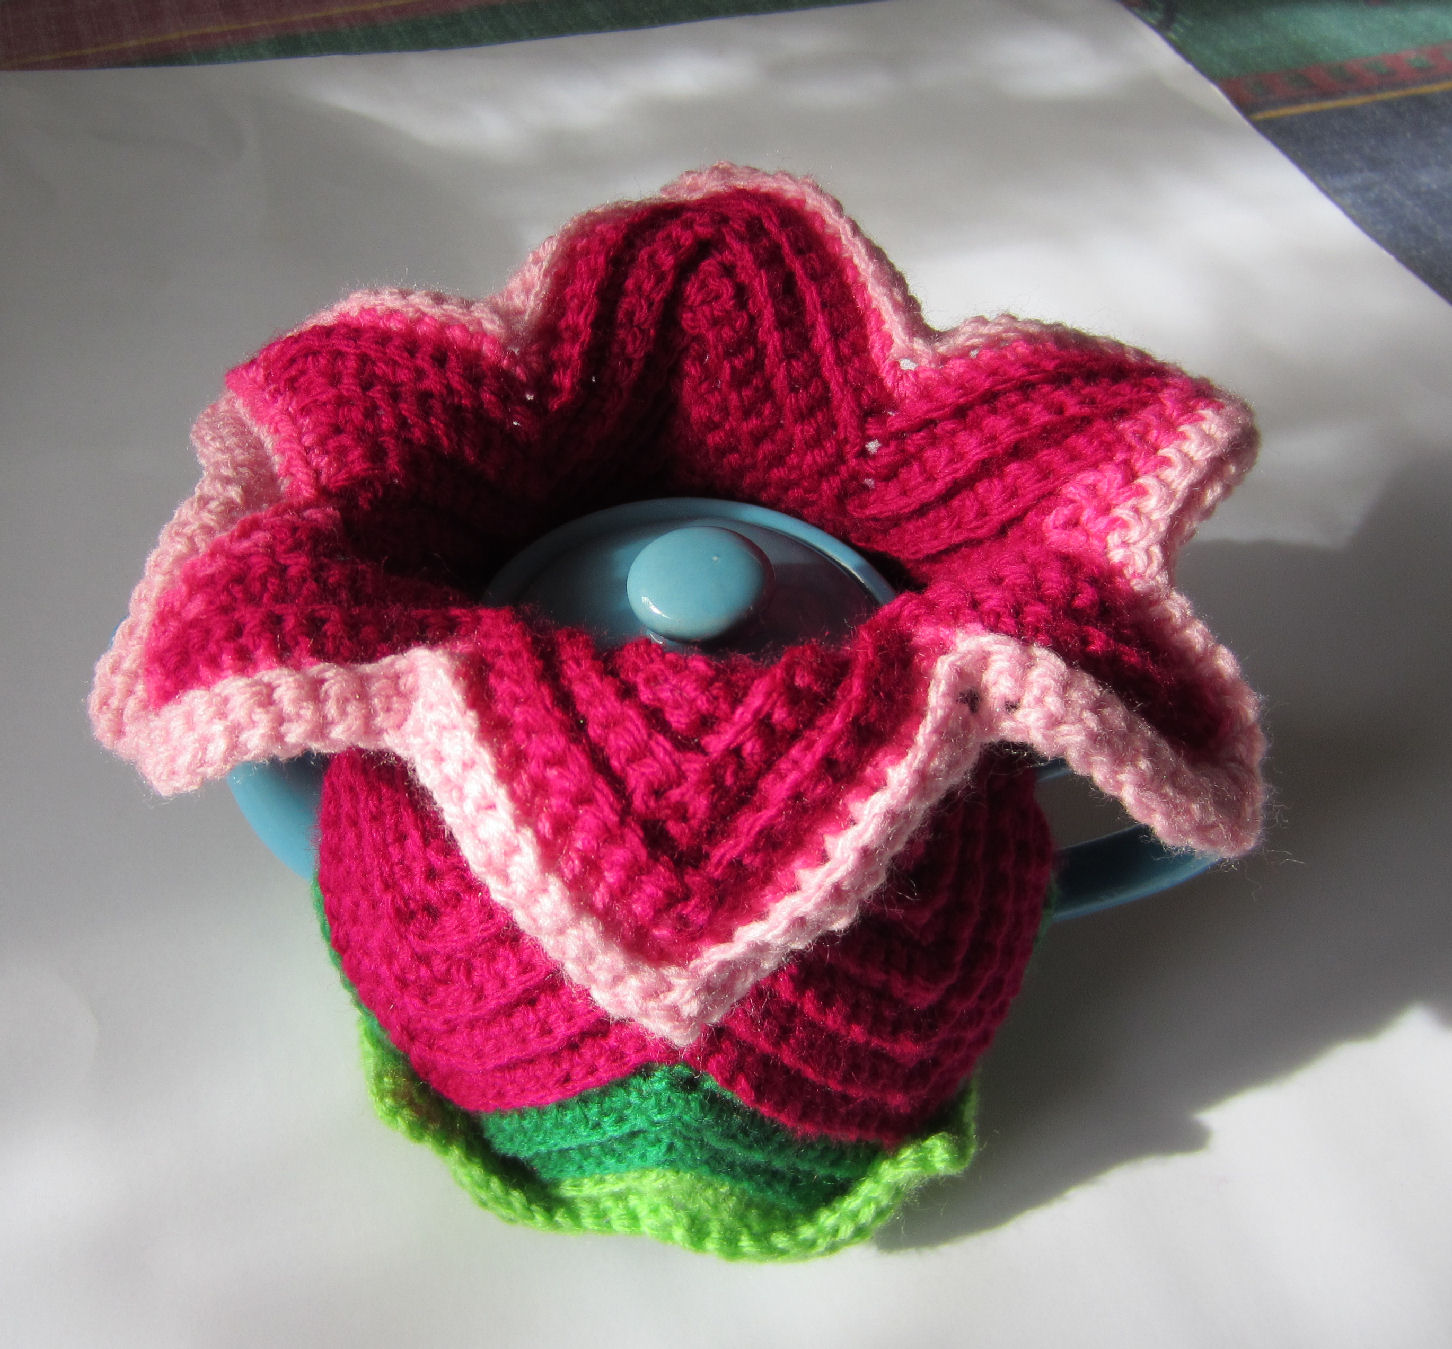 Free Crochet Pattern Small Tea Cozy : Justjen-knits&stitches: Daylily Tea Cosy For Mothers Day ...